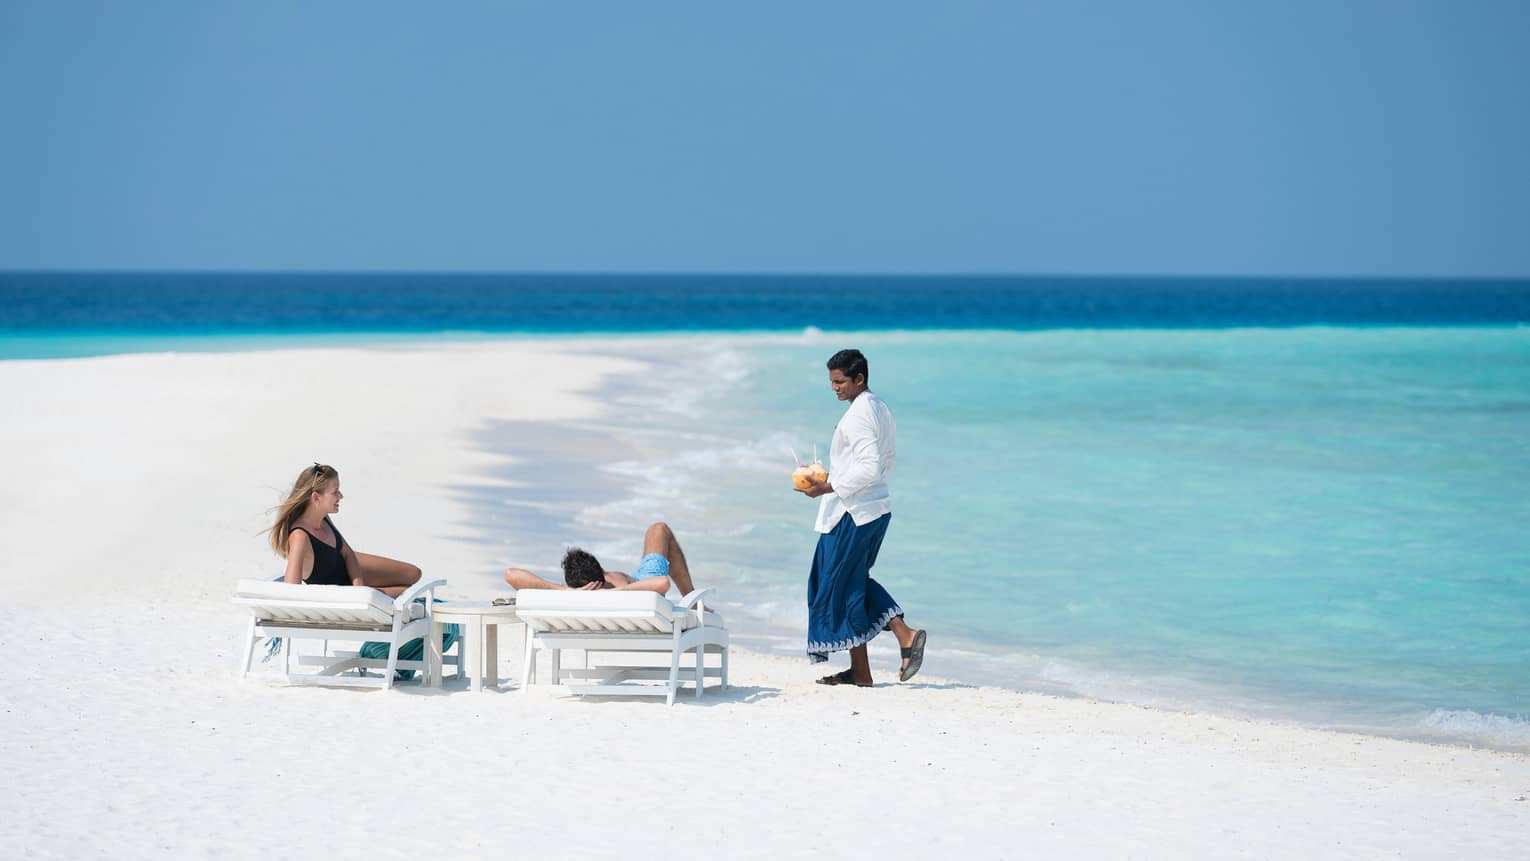 Hotel staff brings coconut cocktails to couple on lounge chairs on sand beach by ocean